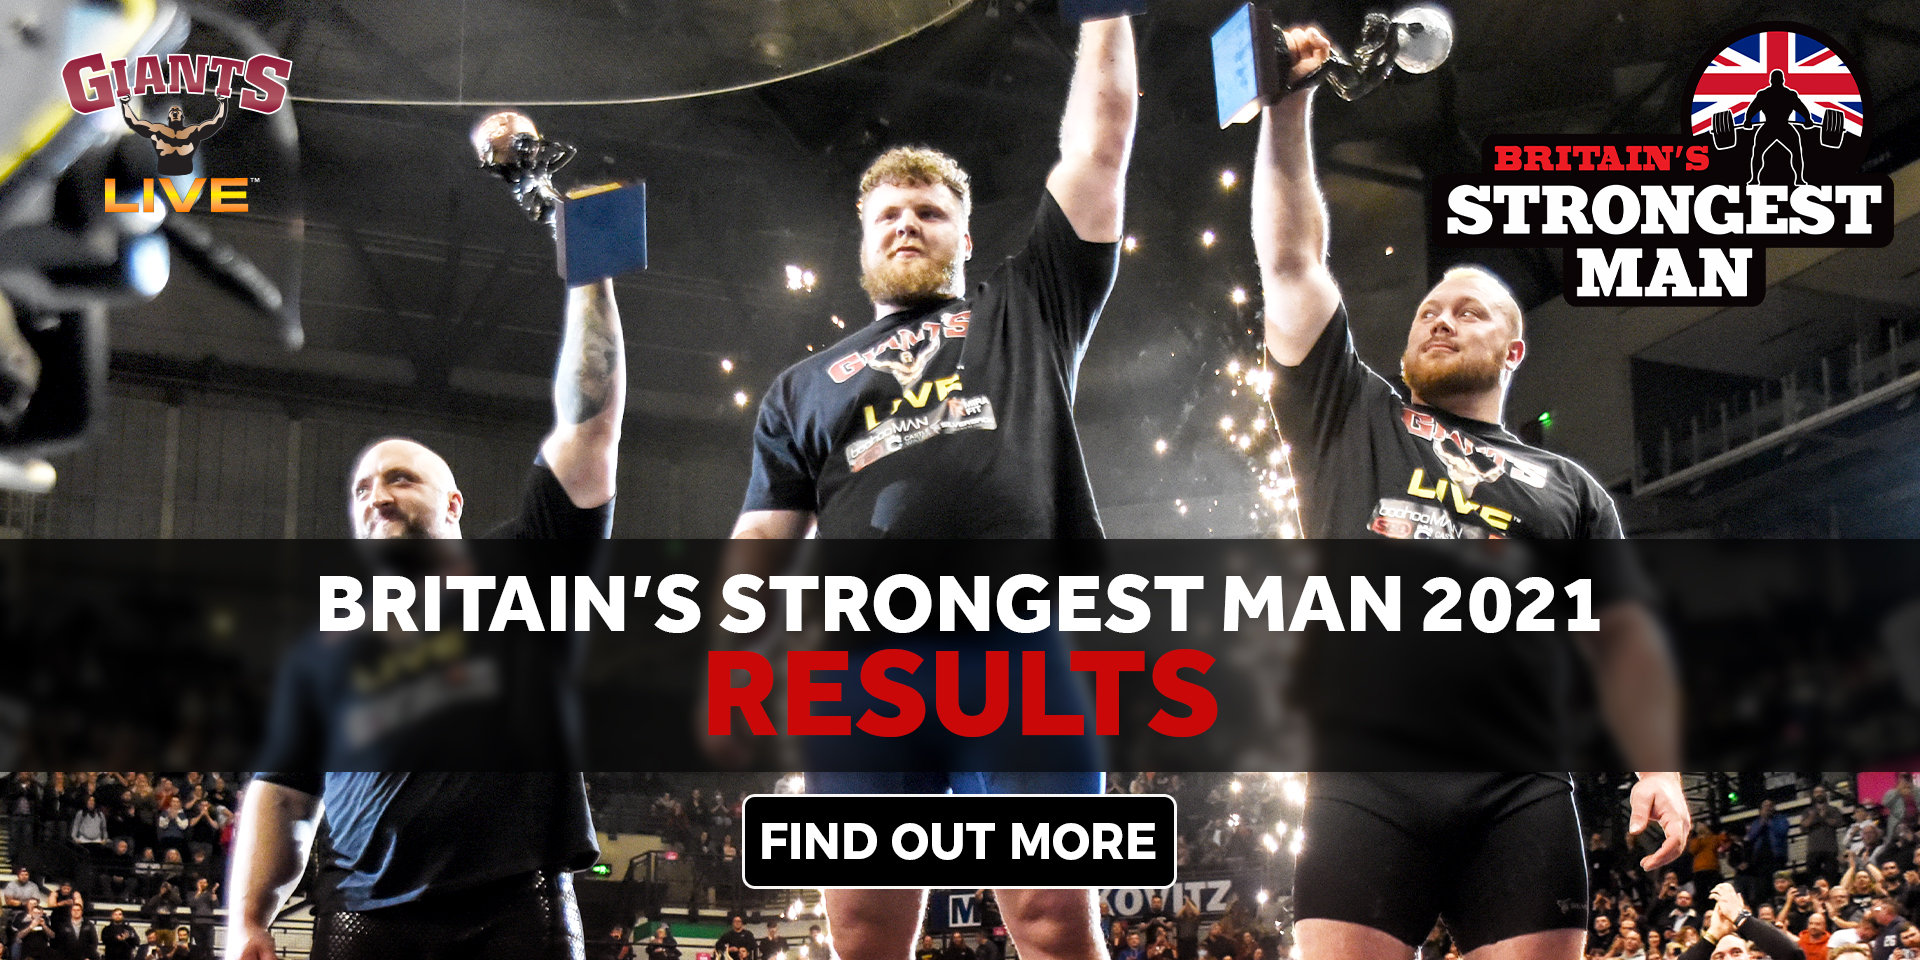 Britain's Strongest Man 2021 - THE RESULTS